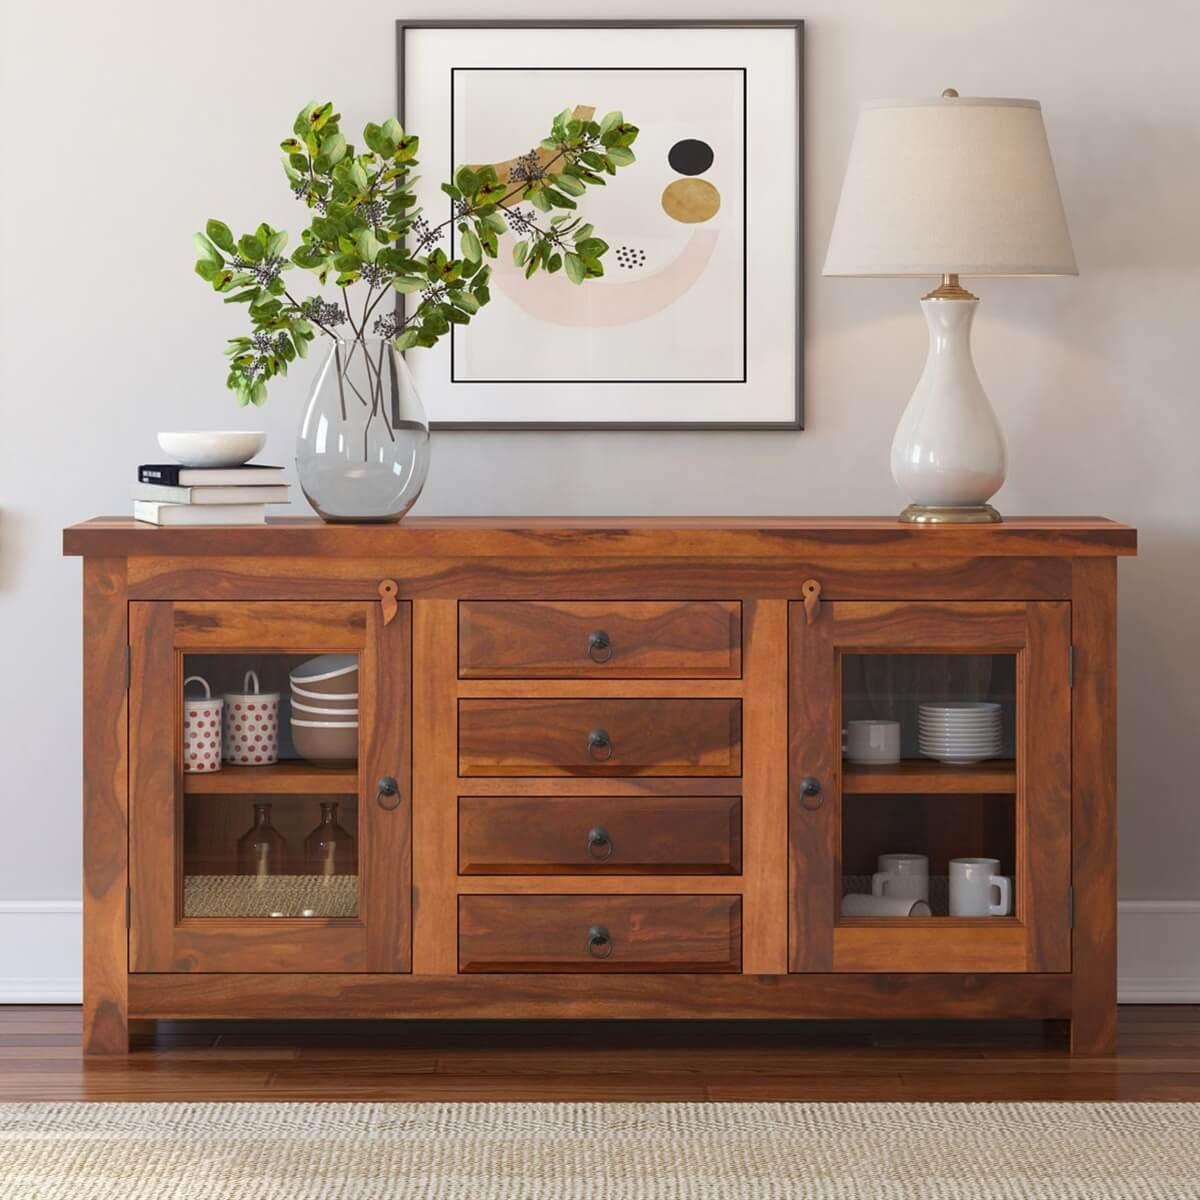 Rustic Glass Door Buffet 4 Solid Wood Sideboard Credenza Cabinet Dining Room